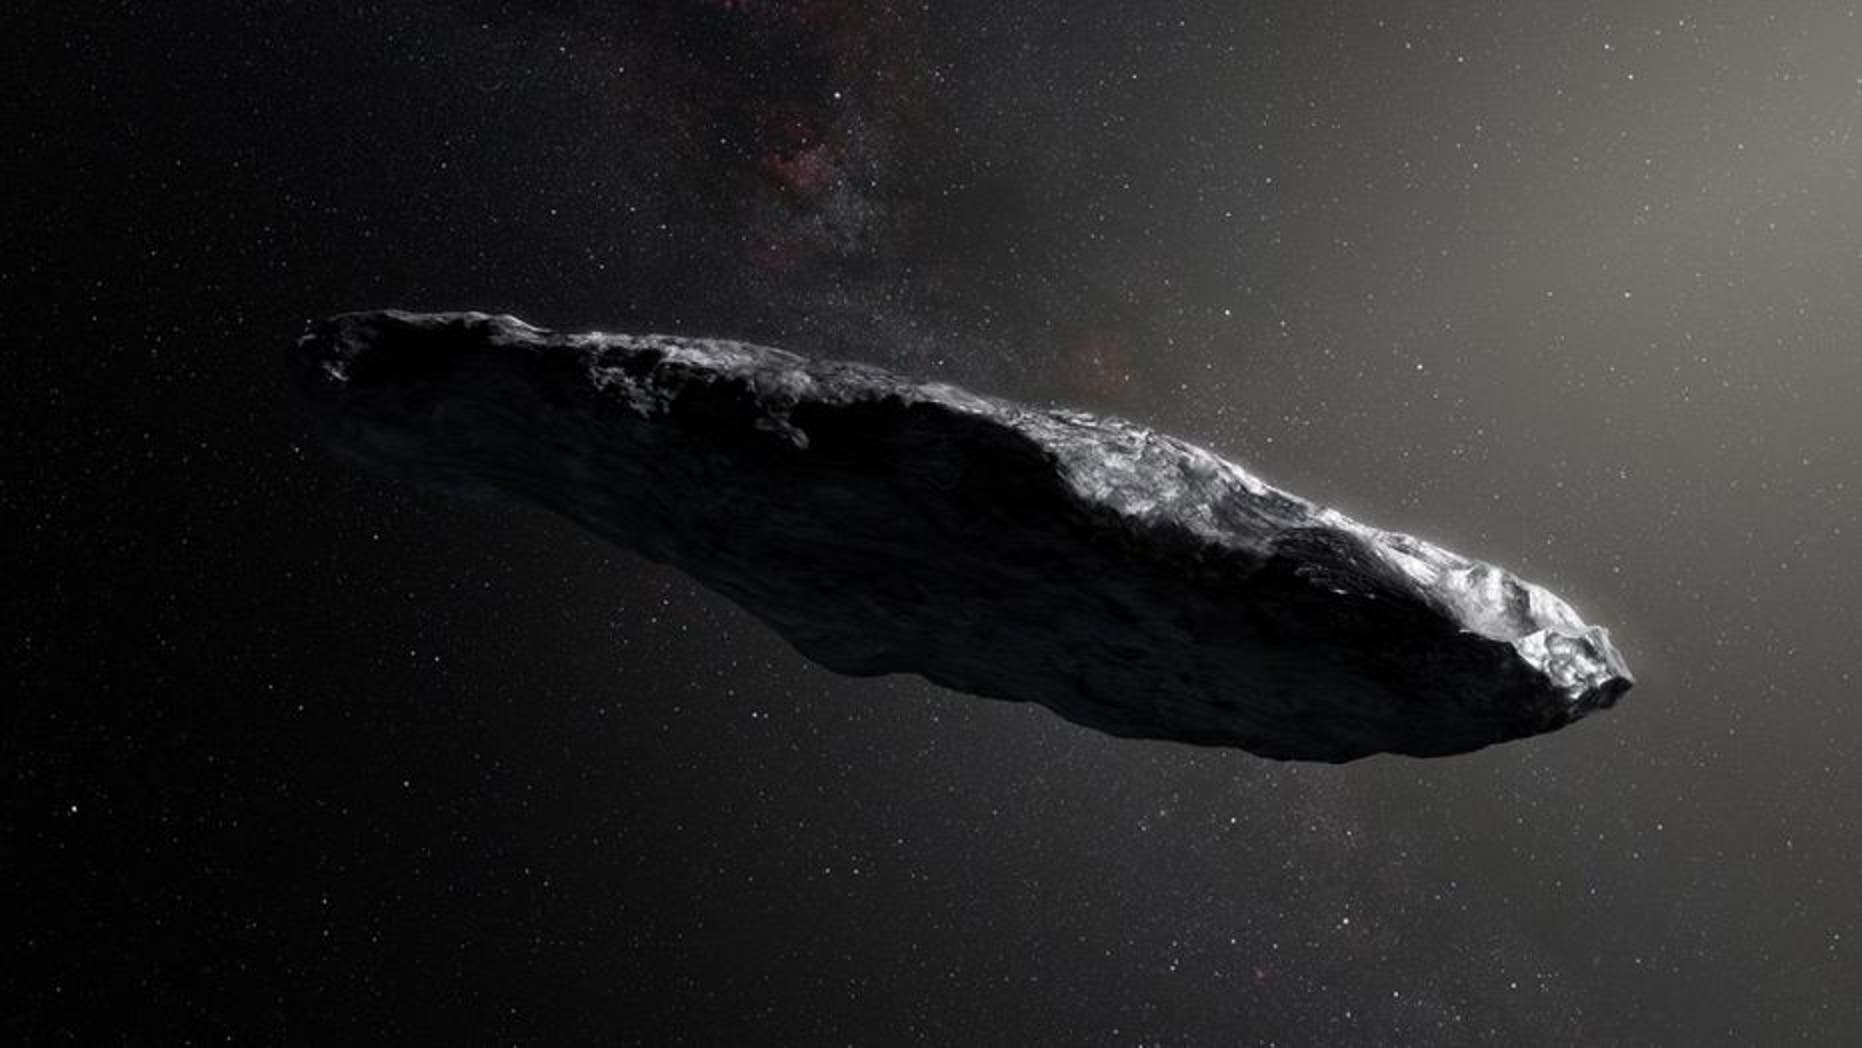 Weird traveling space boulder could be alien ship, say scientists